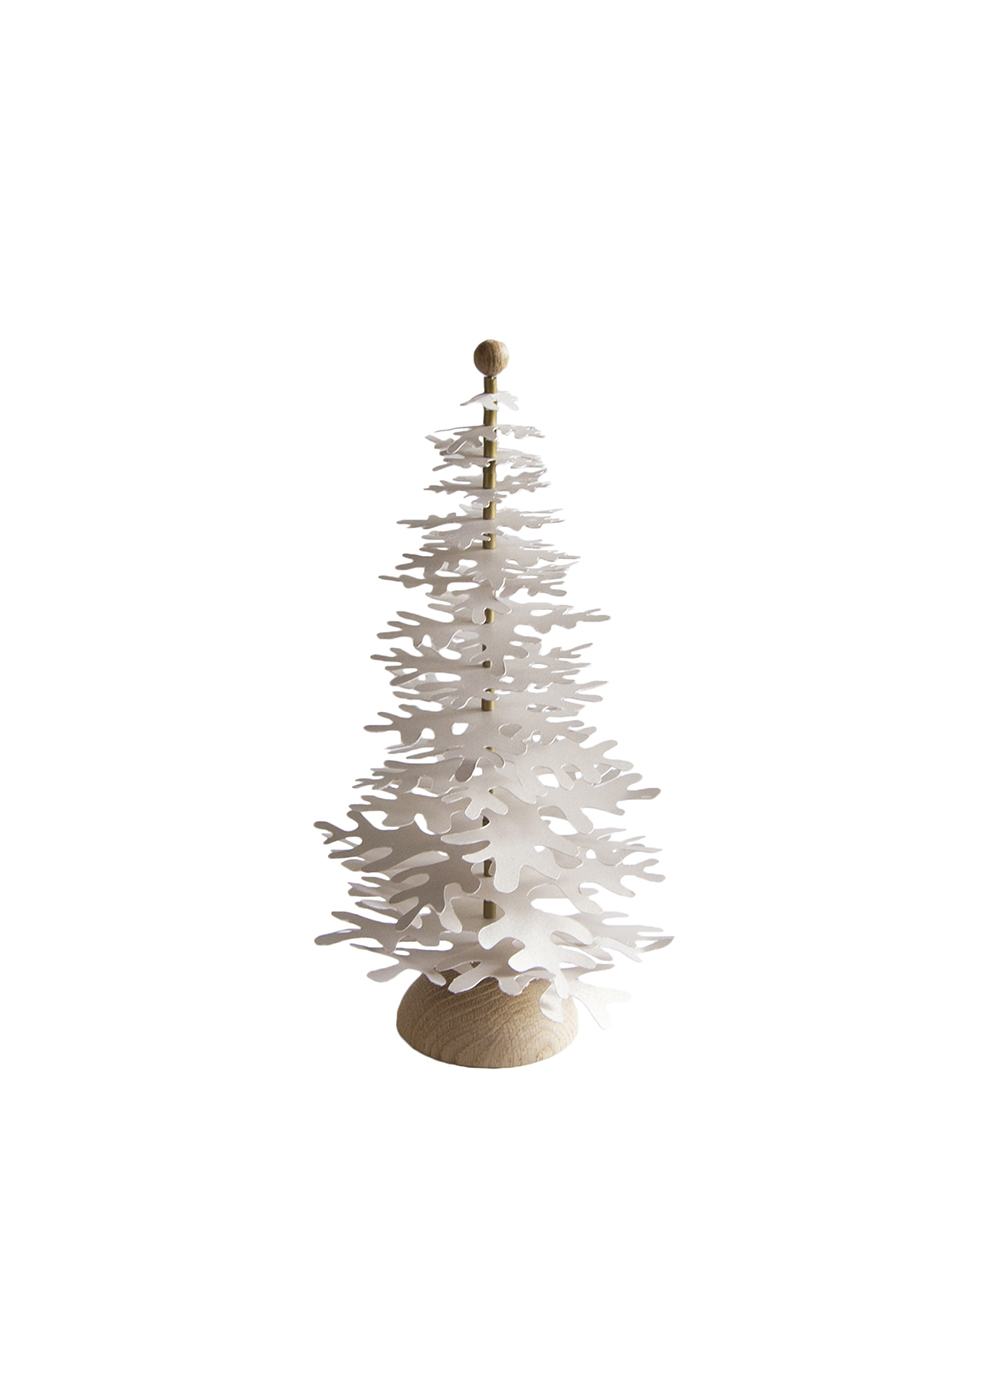 Co-creation-kit-3D-christmas-paper-tree-decoration-